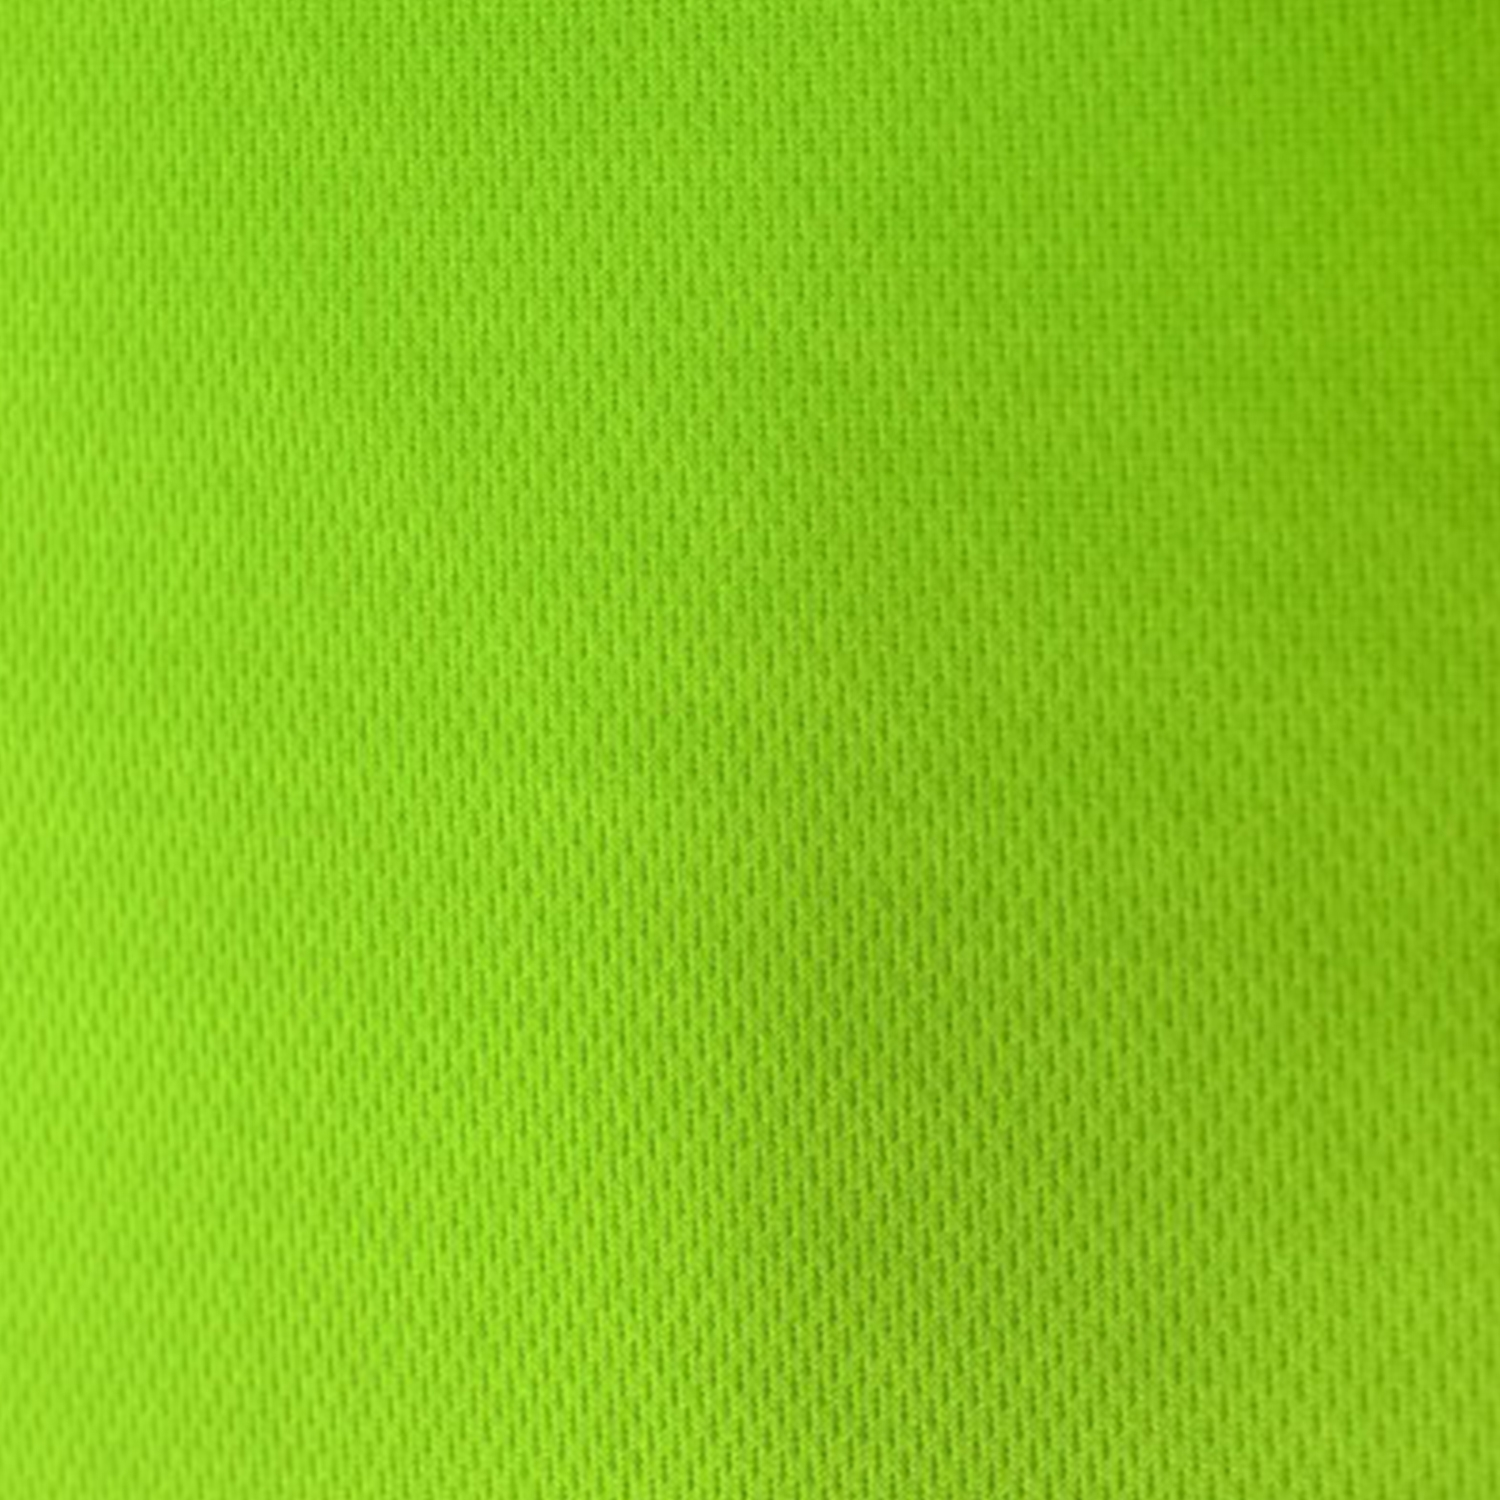 Lime Green Flat Back Dimple Mesh Fabric